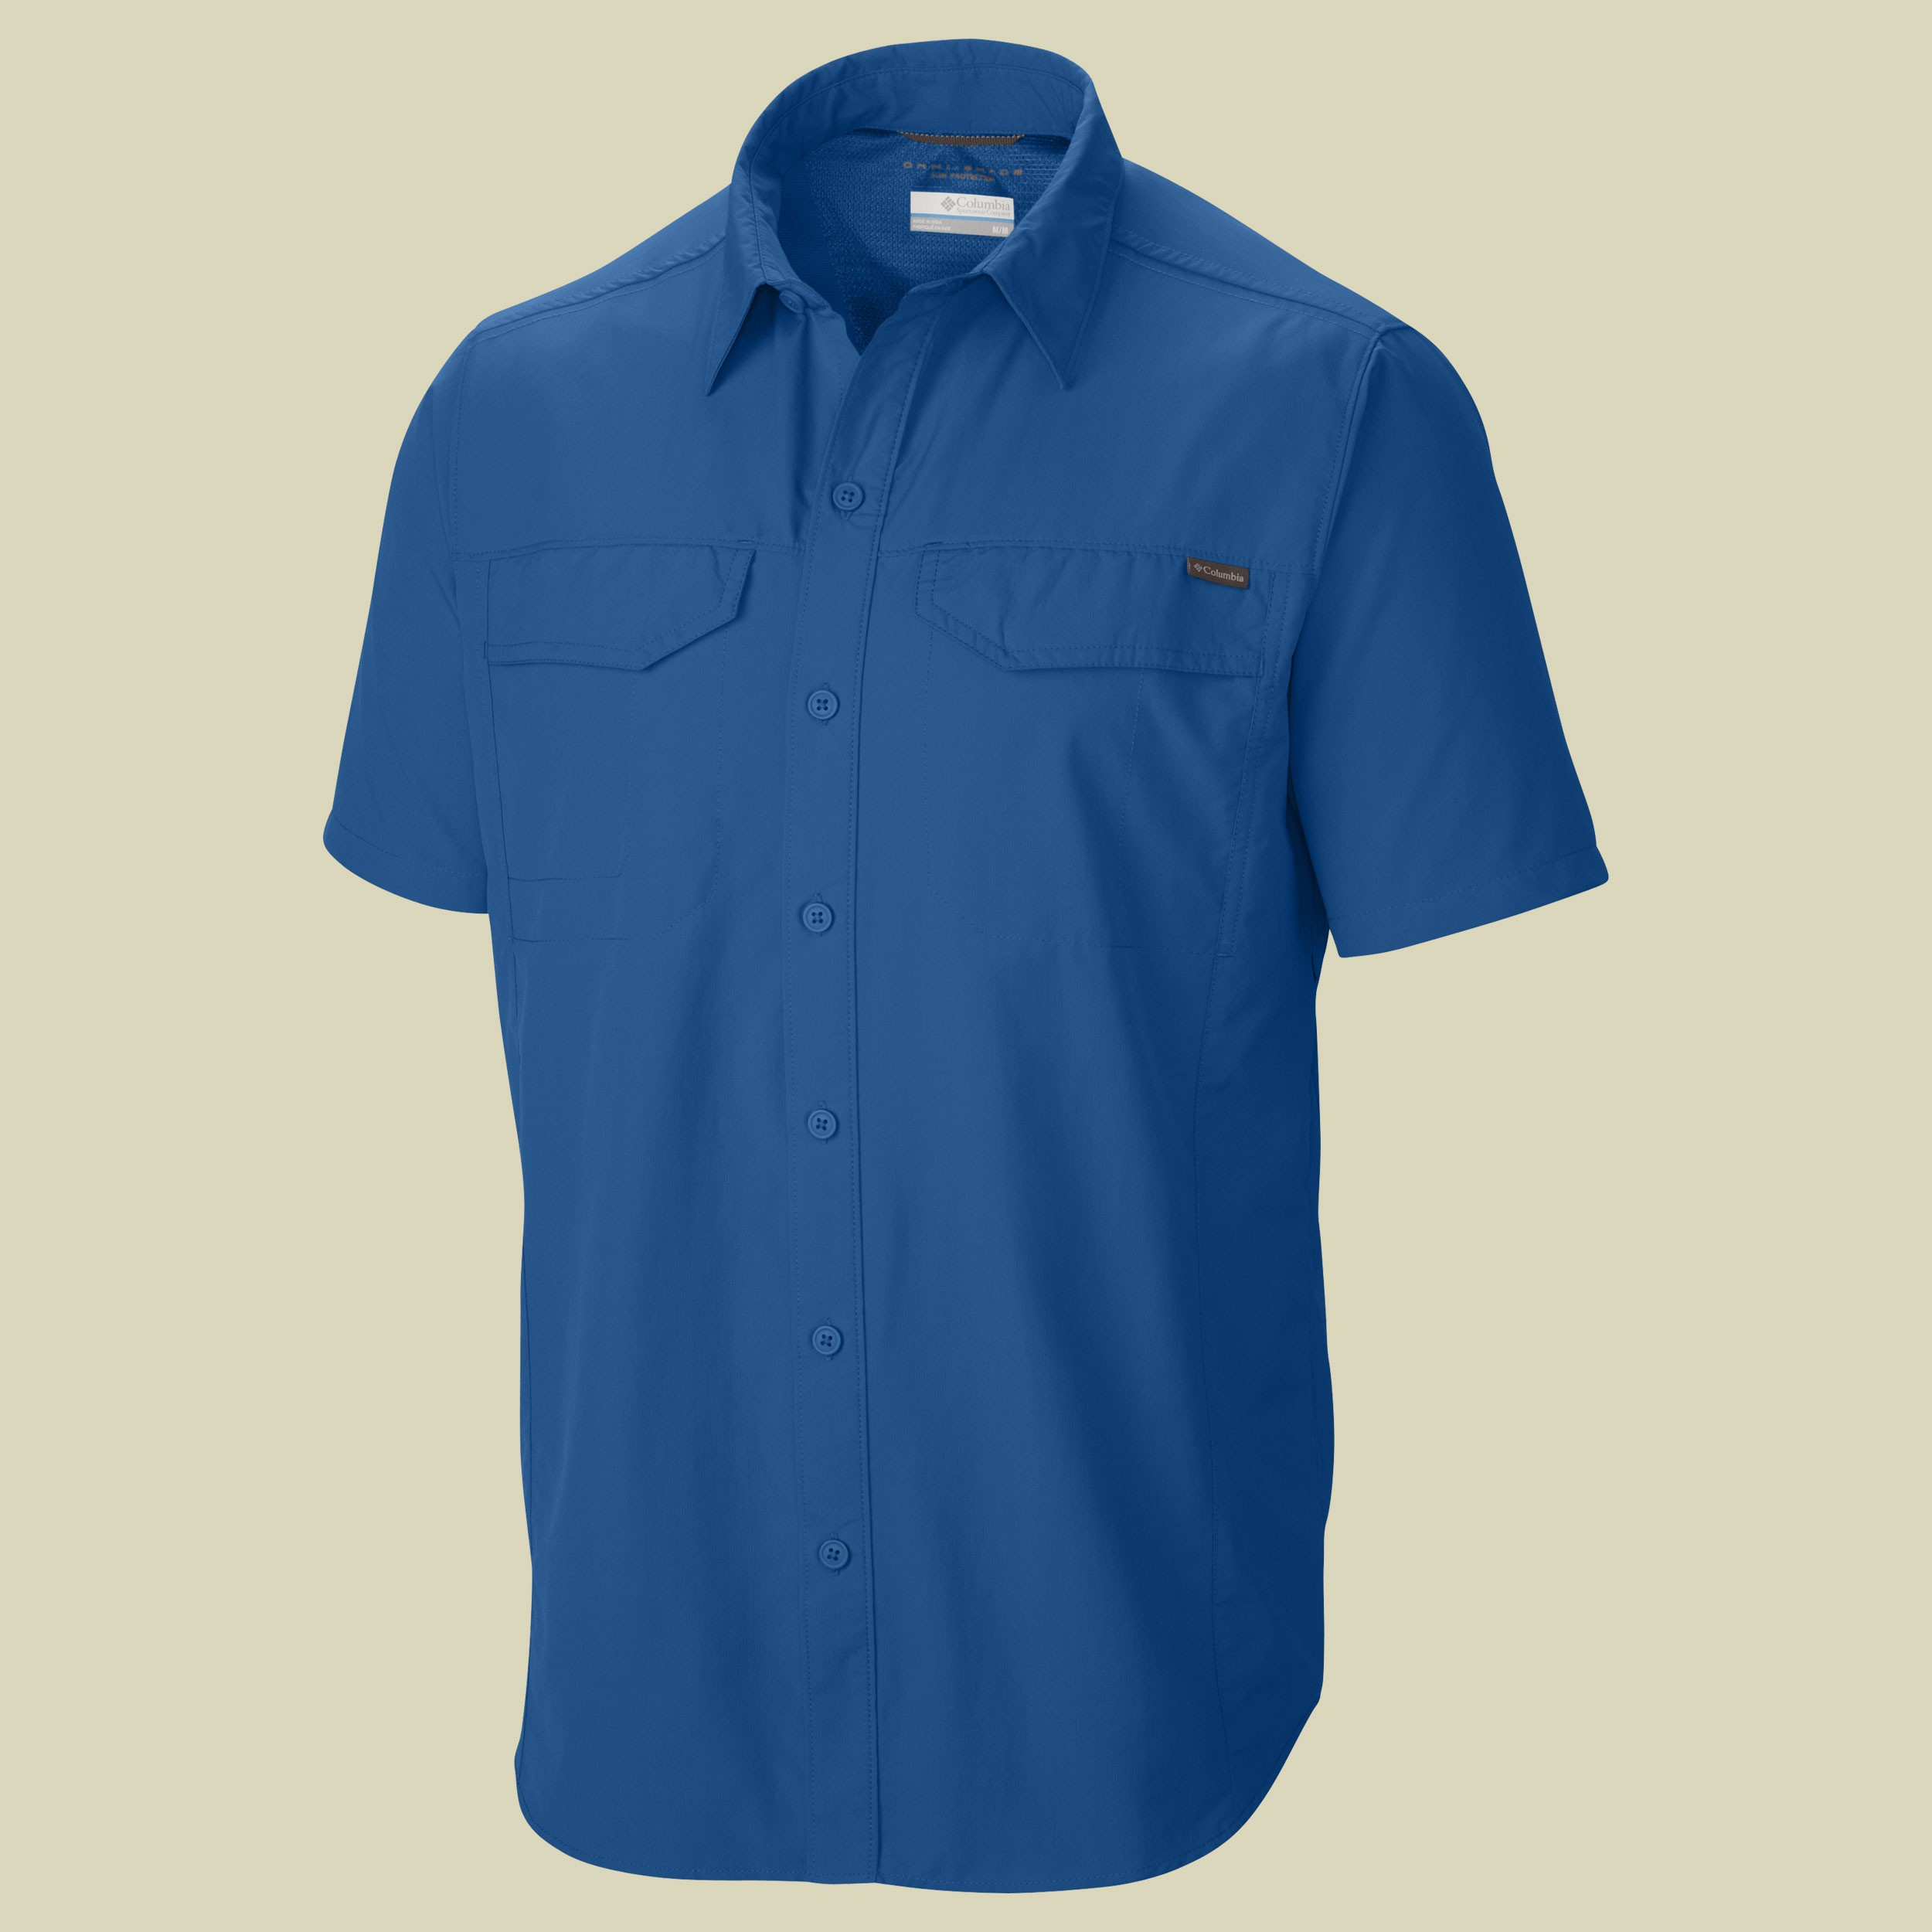 Silver Ridge Short Sleeve Shirt Men